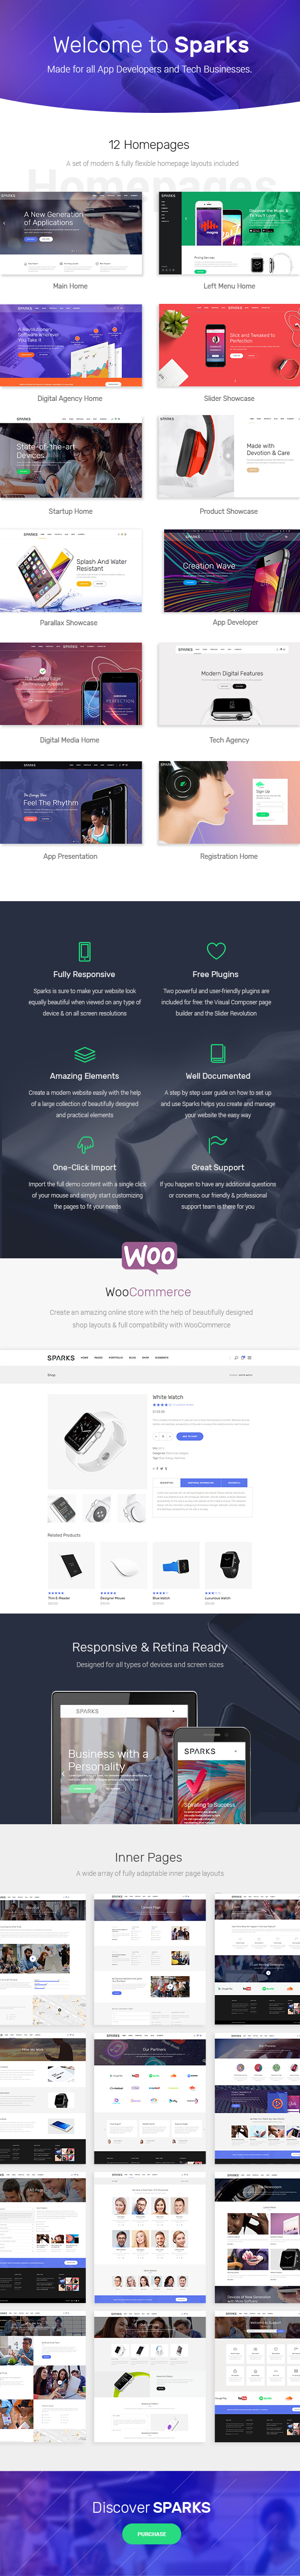 Sparks - Theme for App Developers and Startups - 1